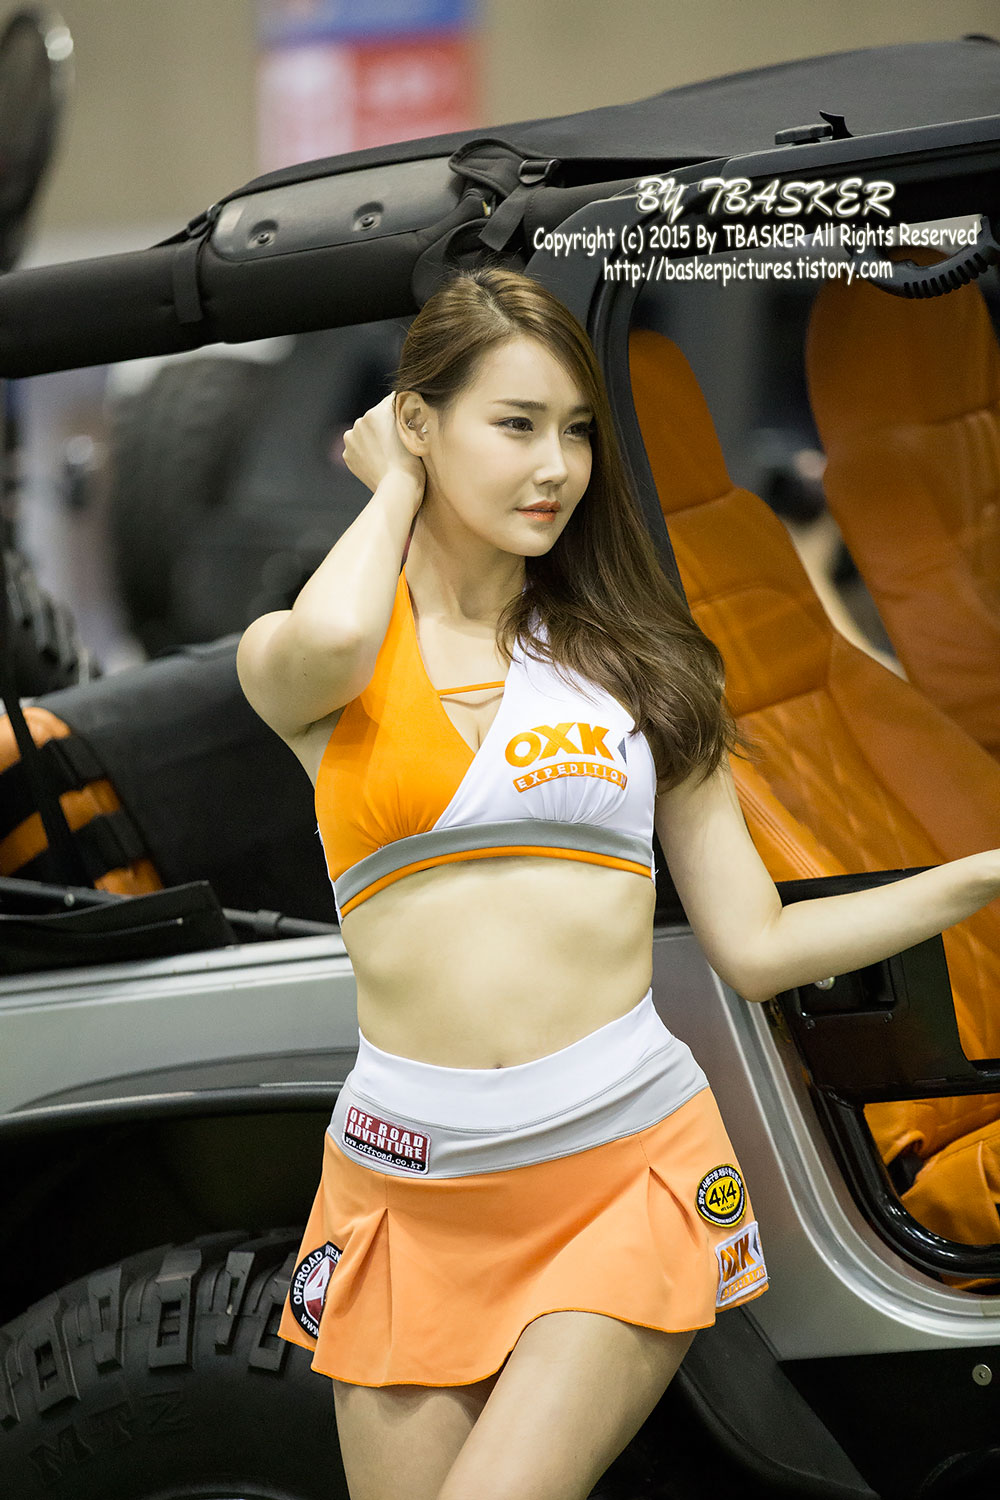 Lee Hyo Young Automotive Week 2015 OXK Expedition